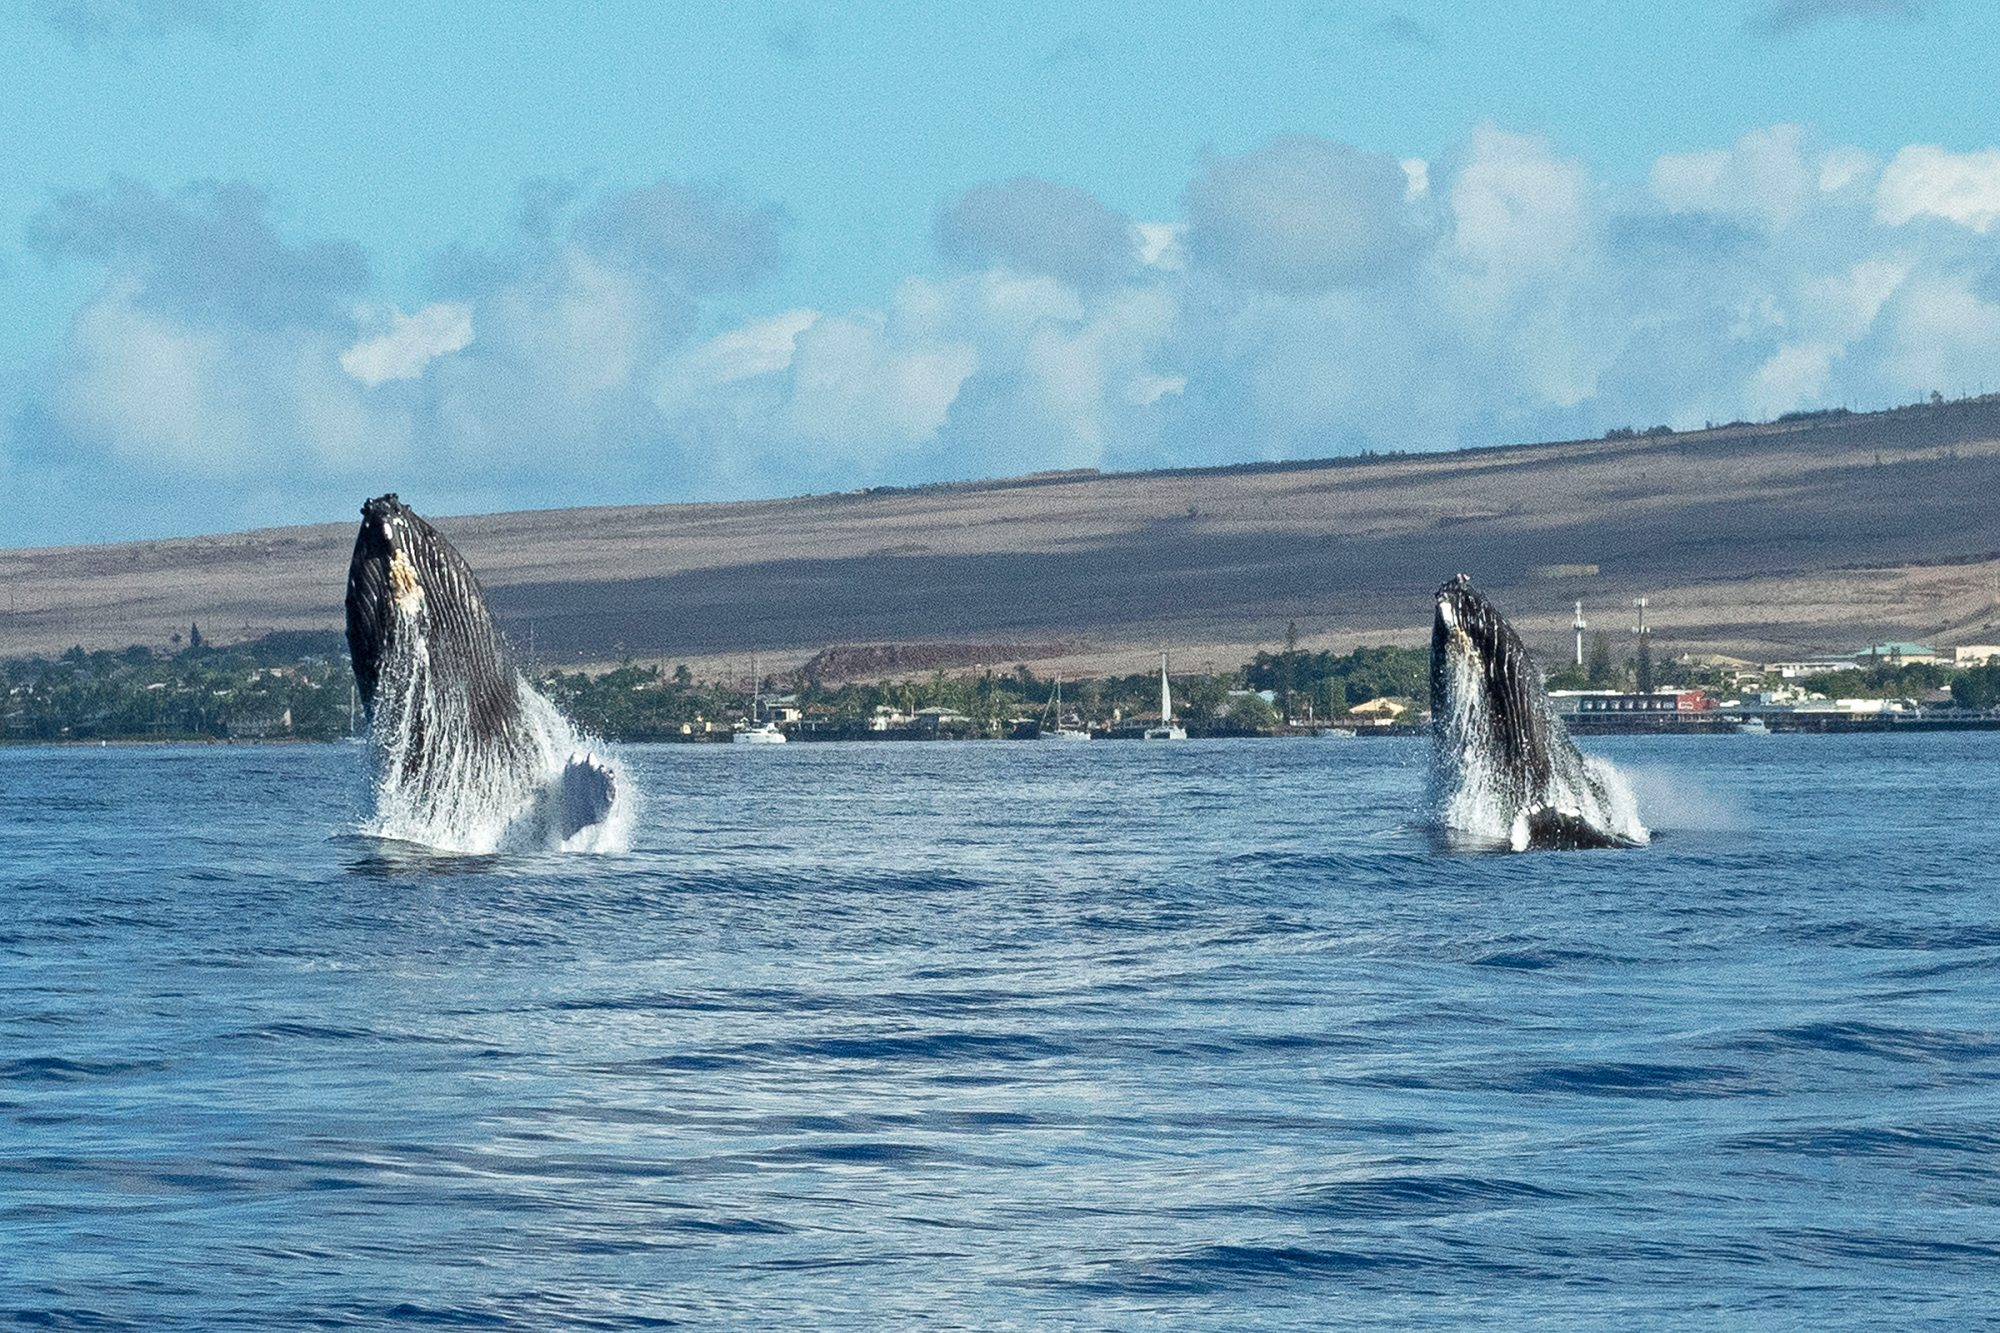 SYNCHRONISED WHALE BREACH